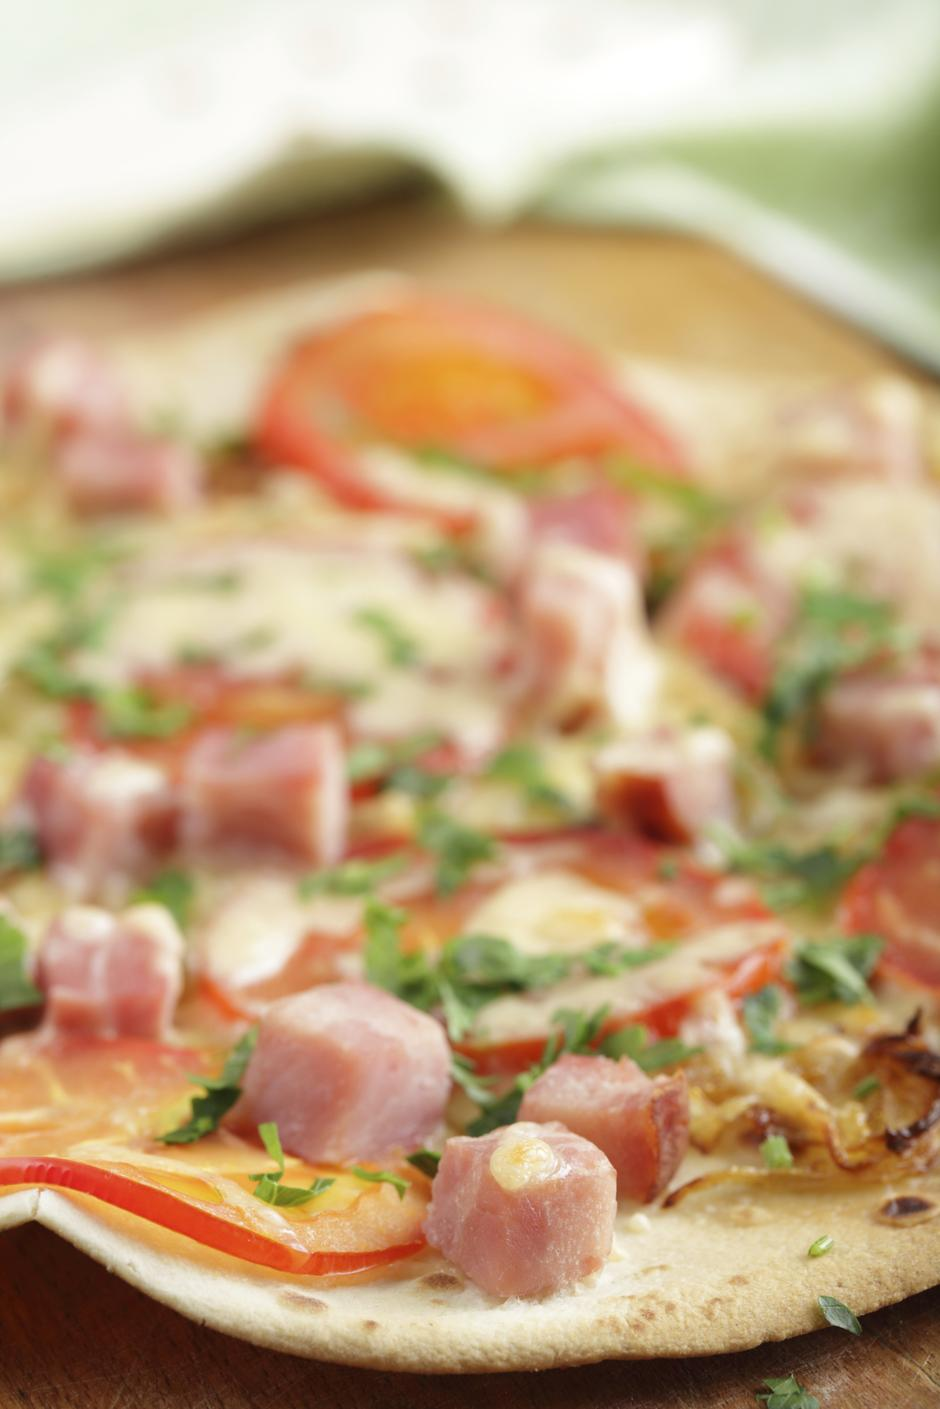 pizza tortilja | Author: Thinkstock